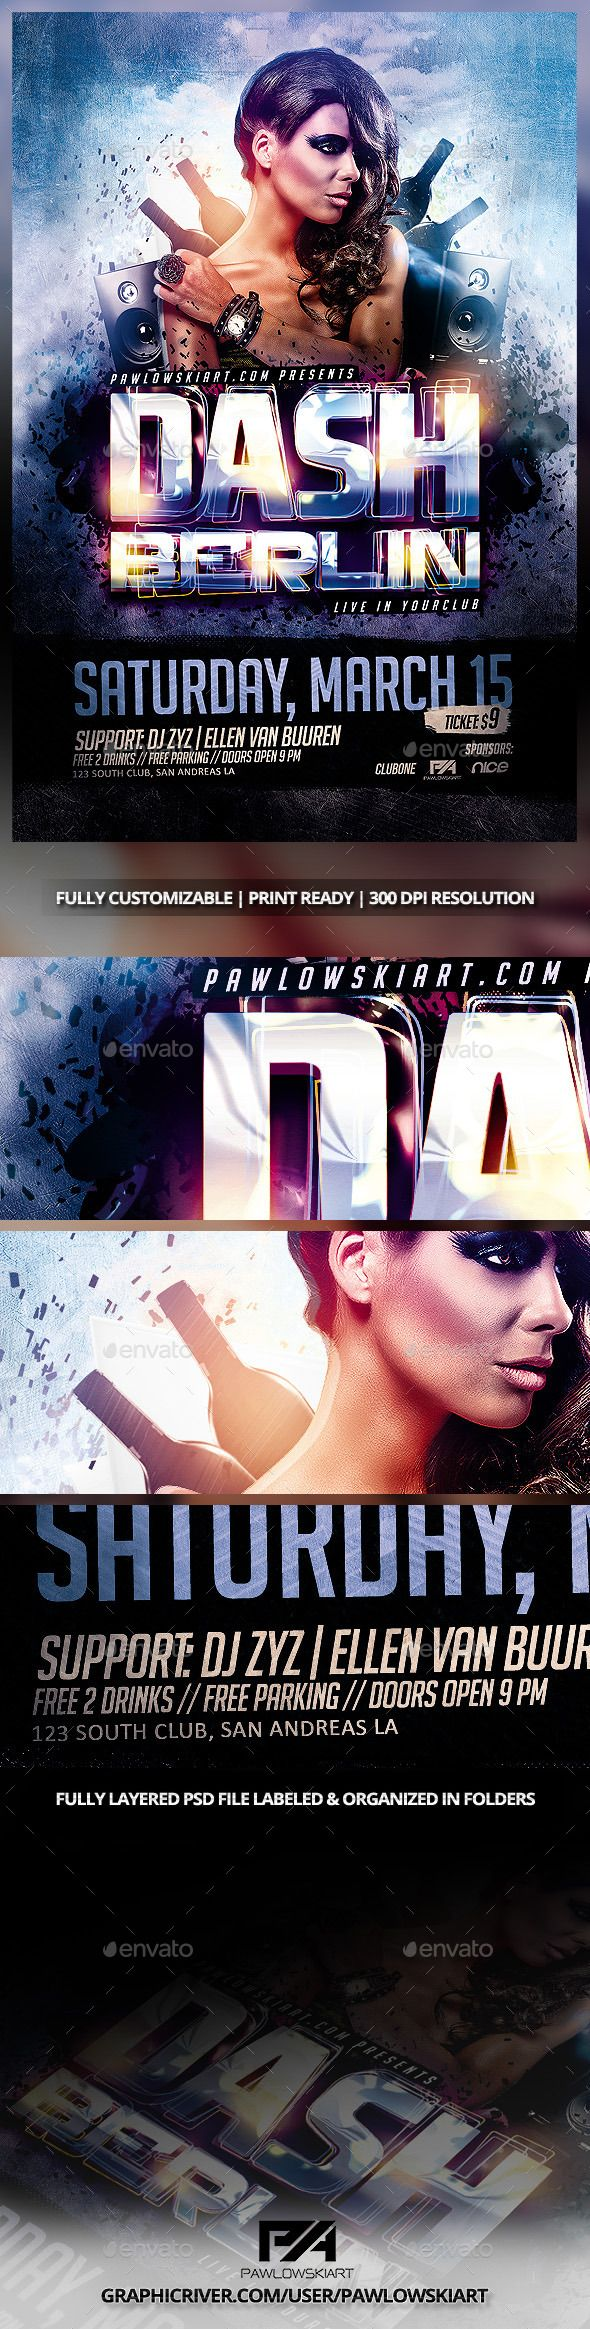 DJ Electro v2 Party Flyer PSD Template